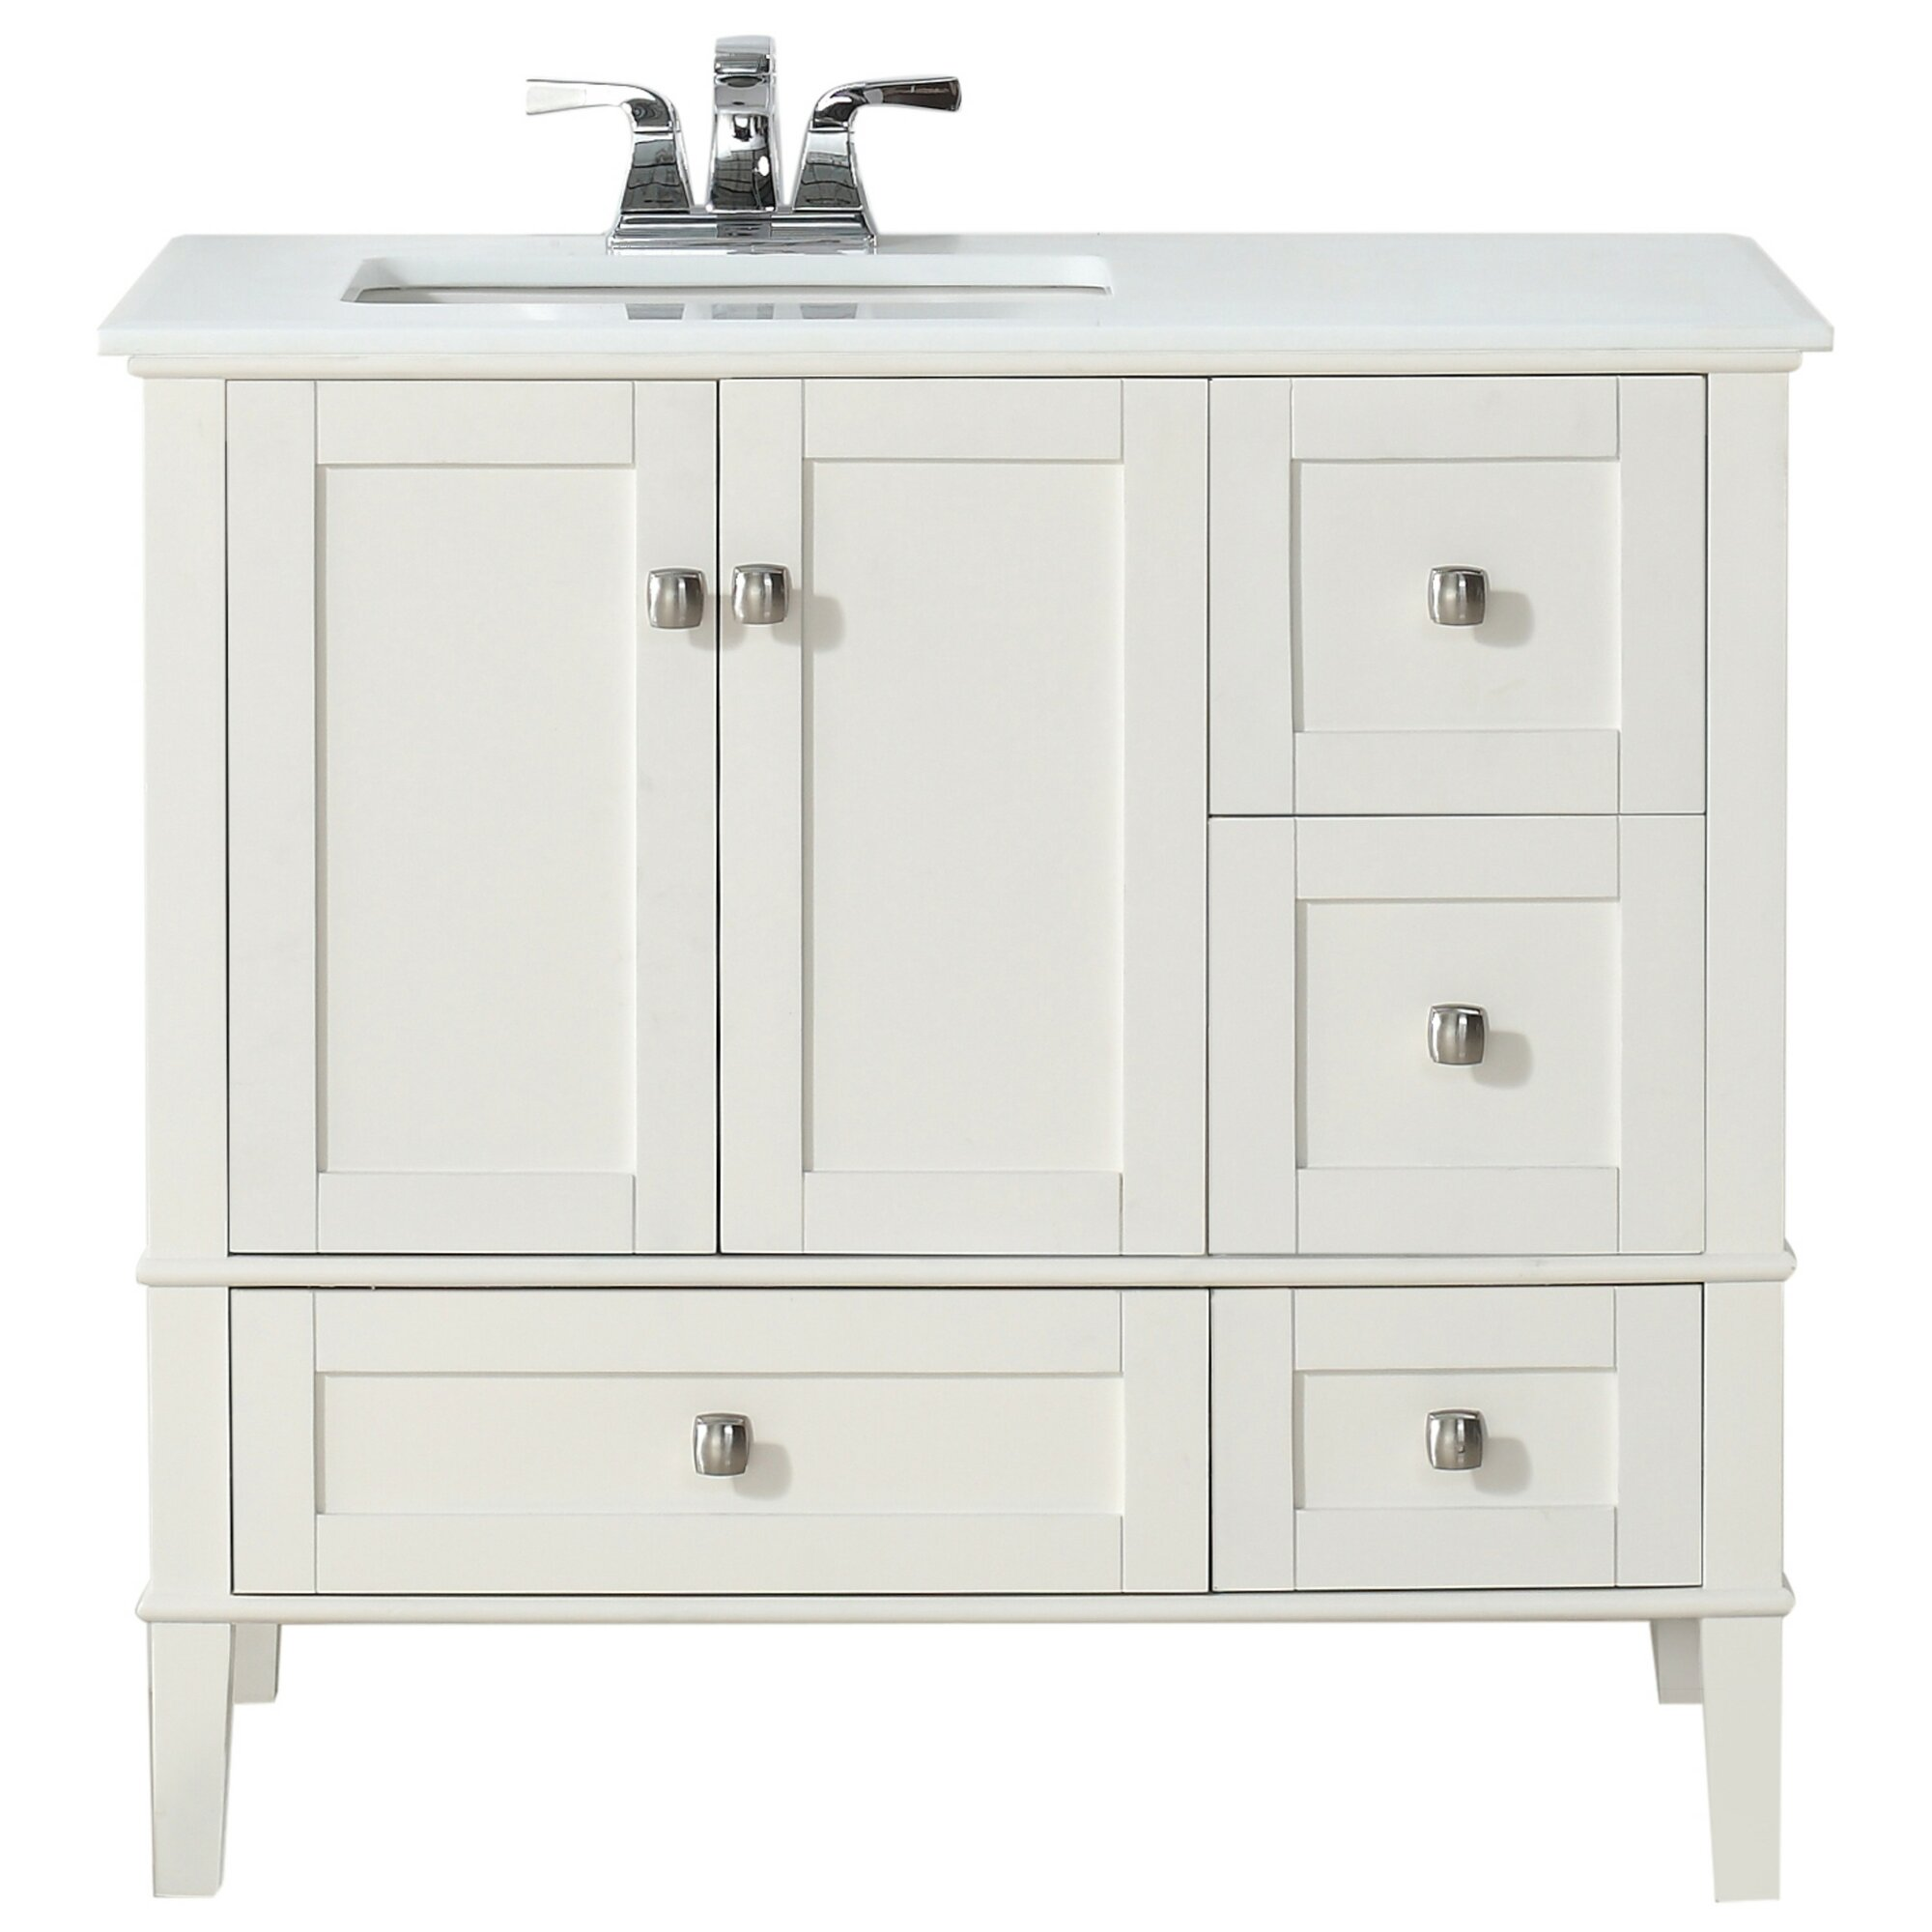 Offset bathroom vanity